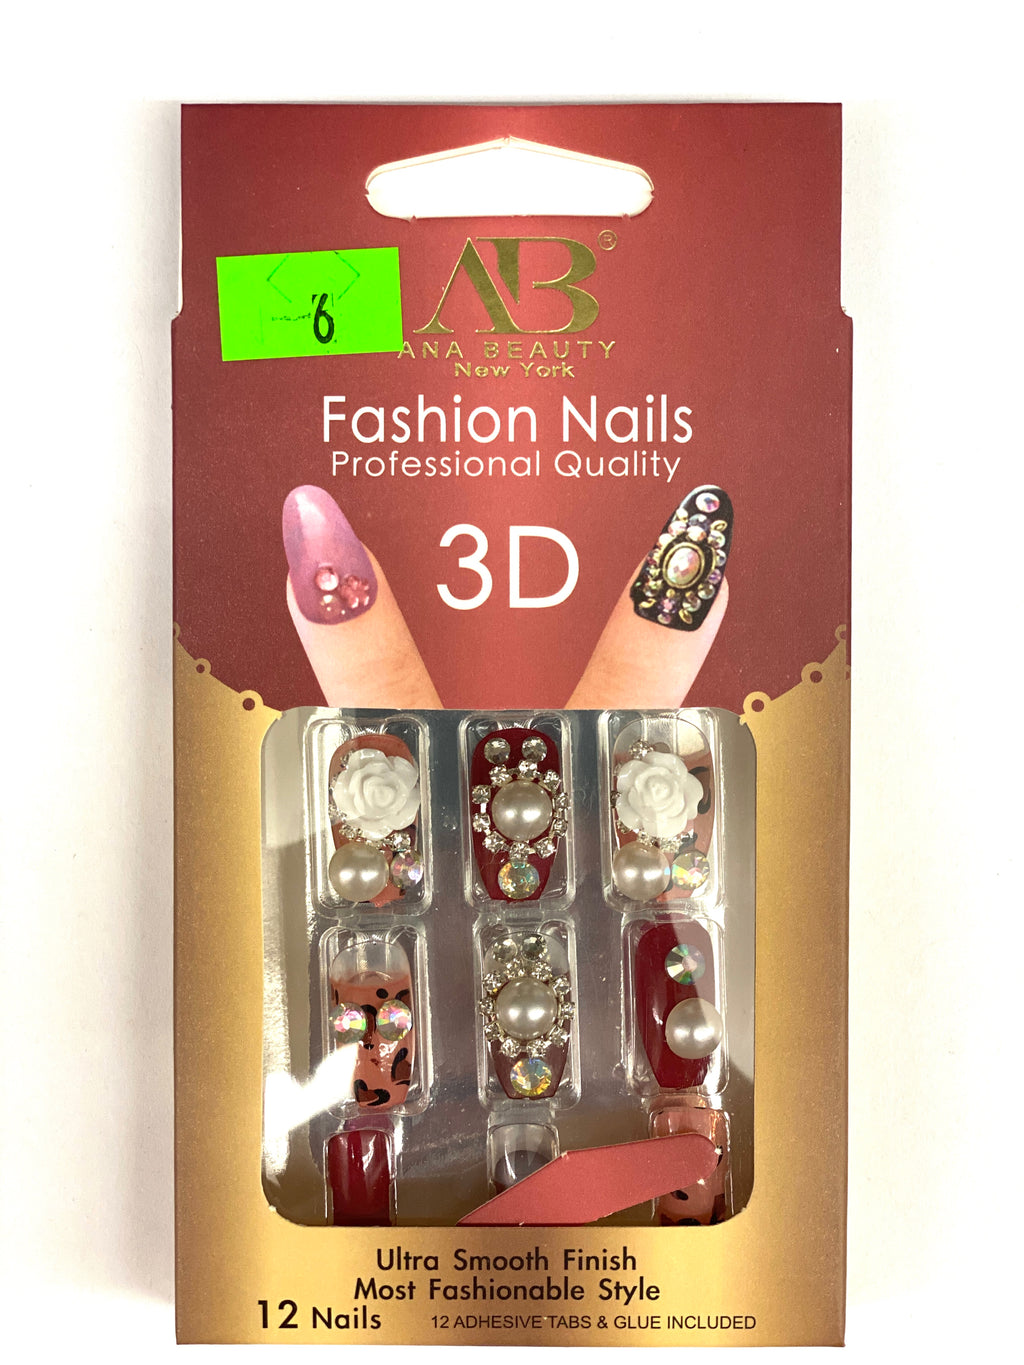 Ana Beauty Fashion Nails 3D - B6